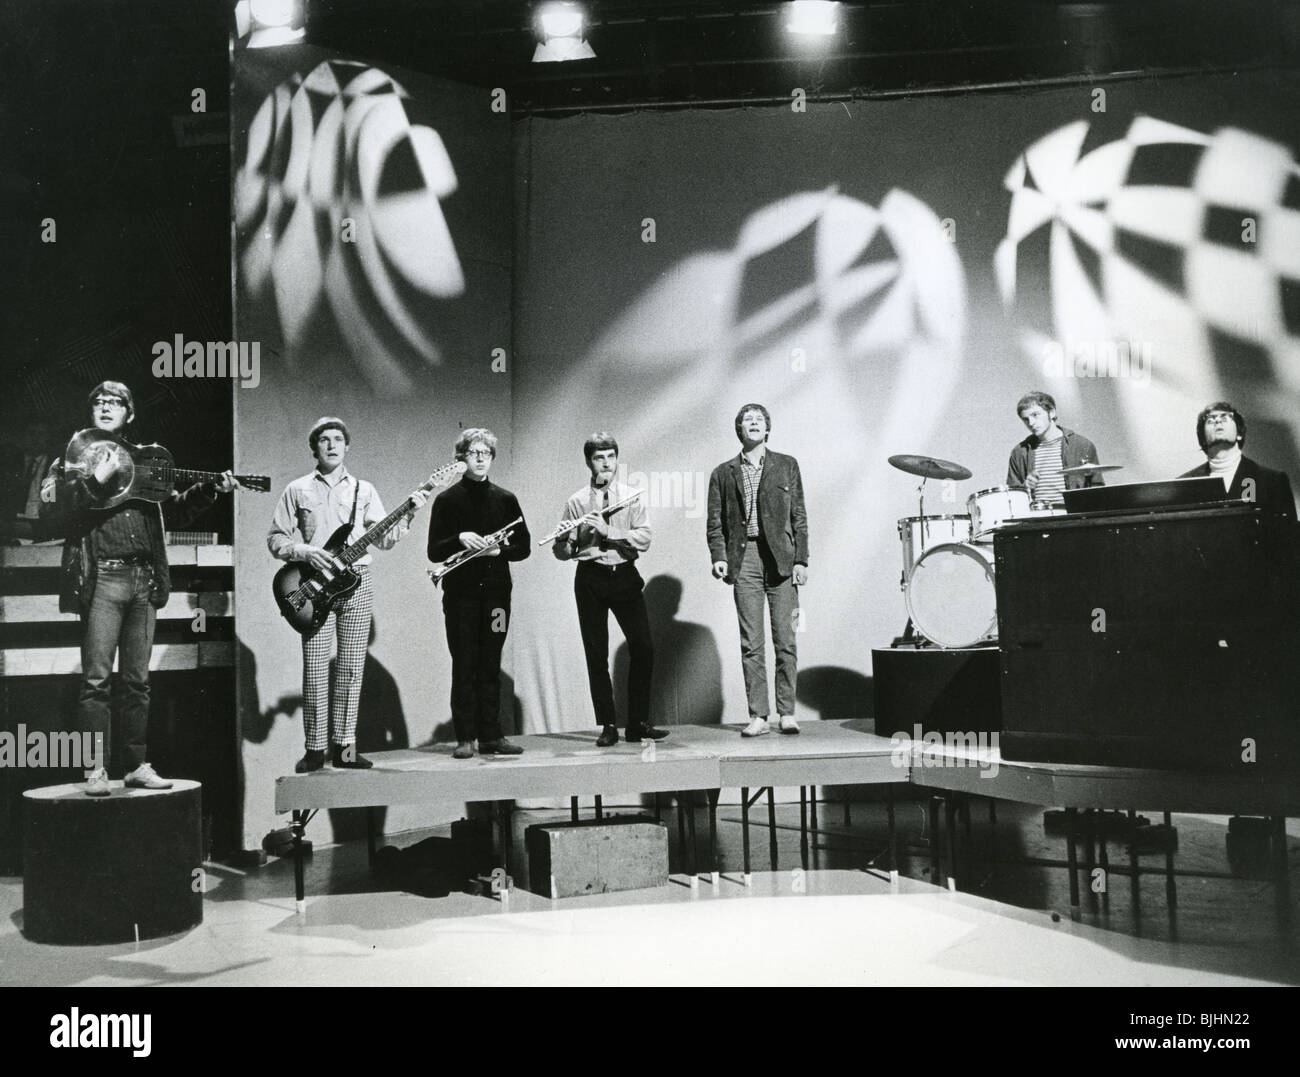 MANFRED MANN on Top Of The Pops in 1965. Photoi: Tony Gale - Stock Image